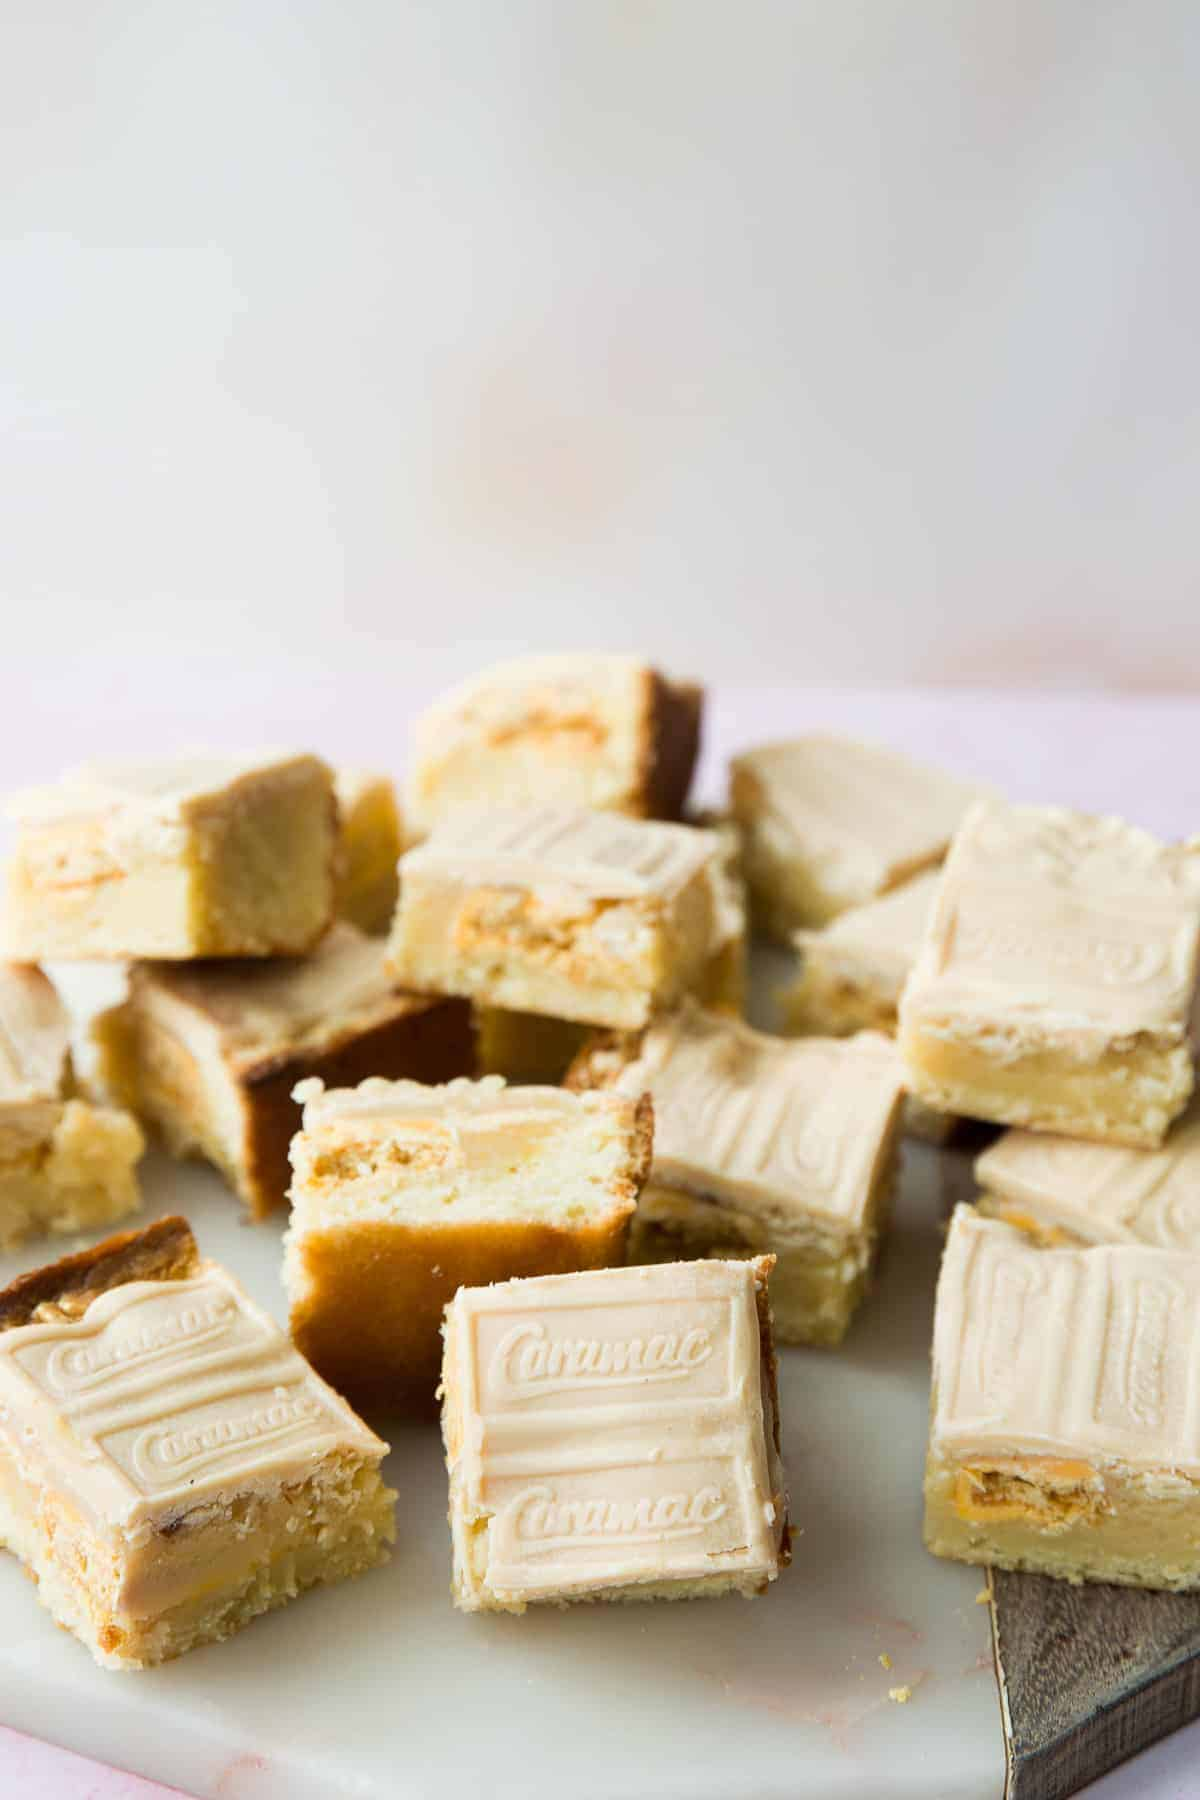 Fudgy white chocolate blondies topped with caramac bars.